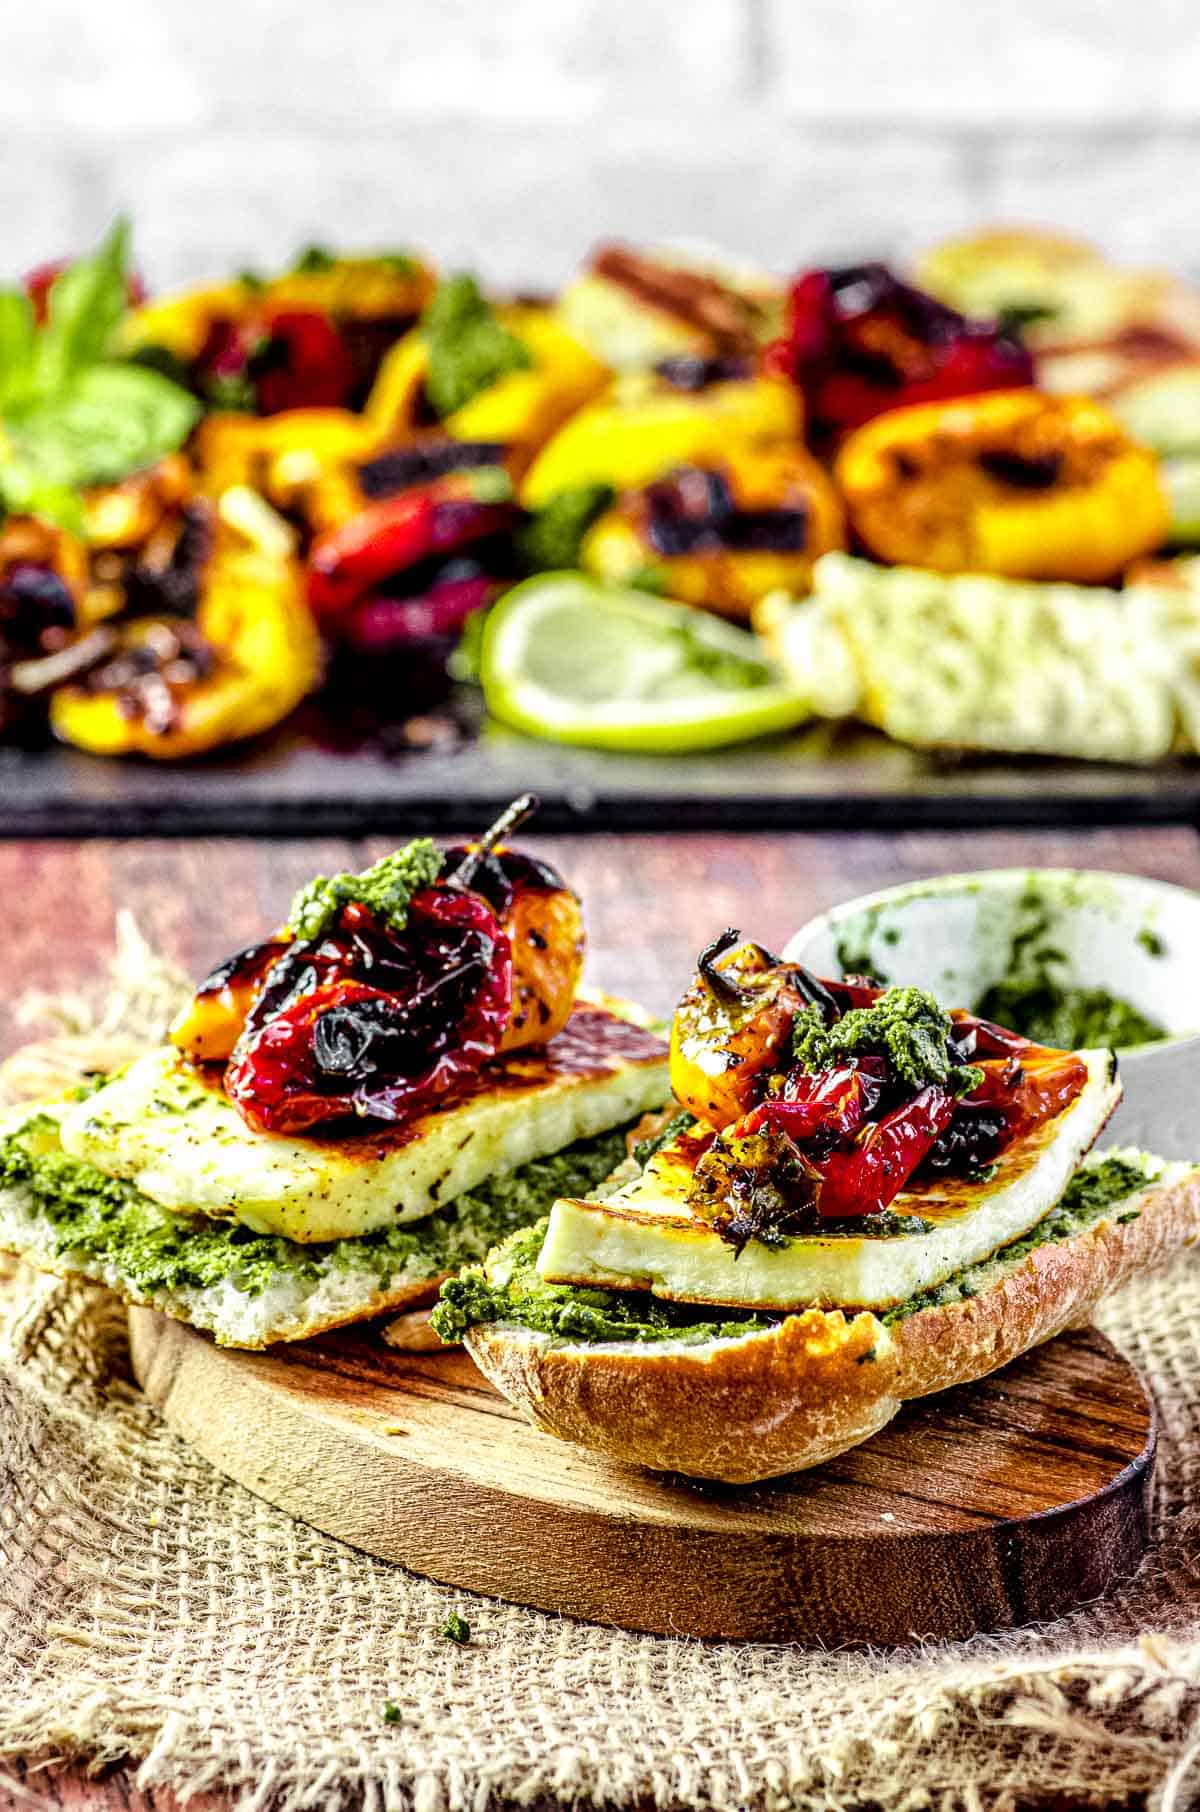 two baguette slices topped with pesto grilled halloumi cheese and roasted mini peppers